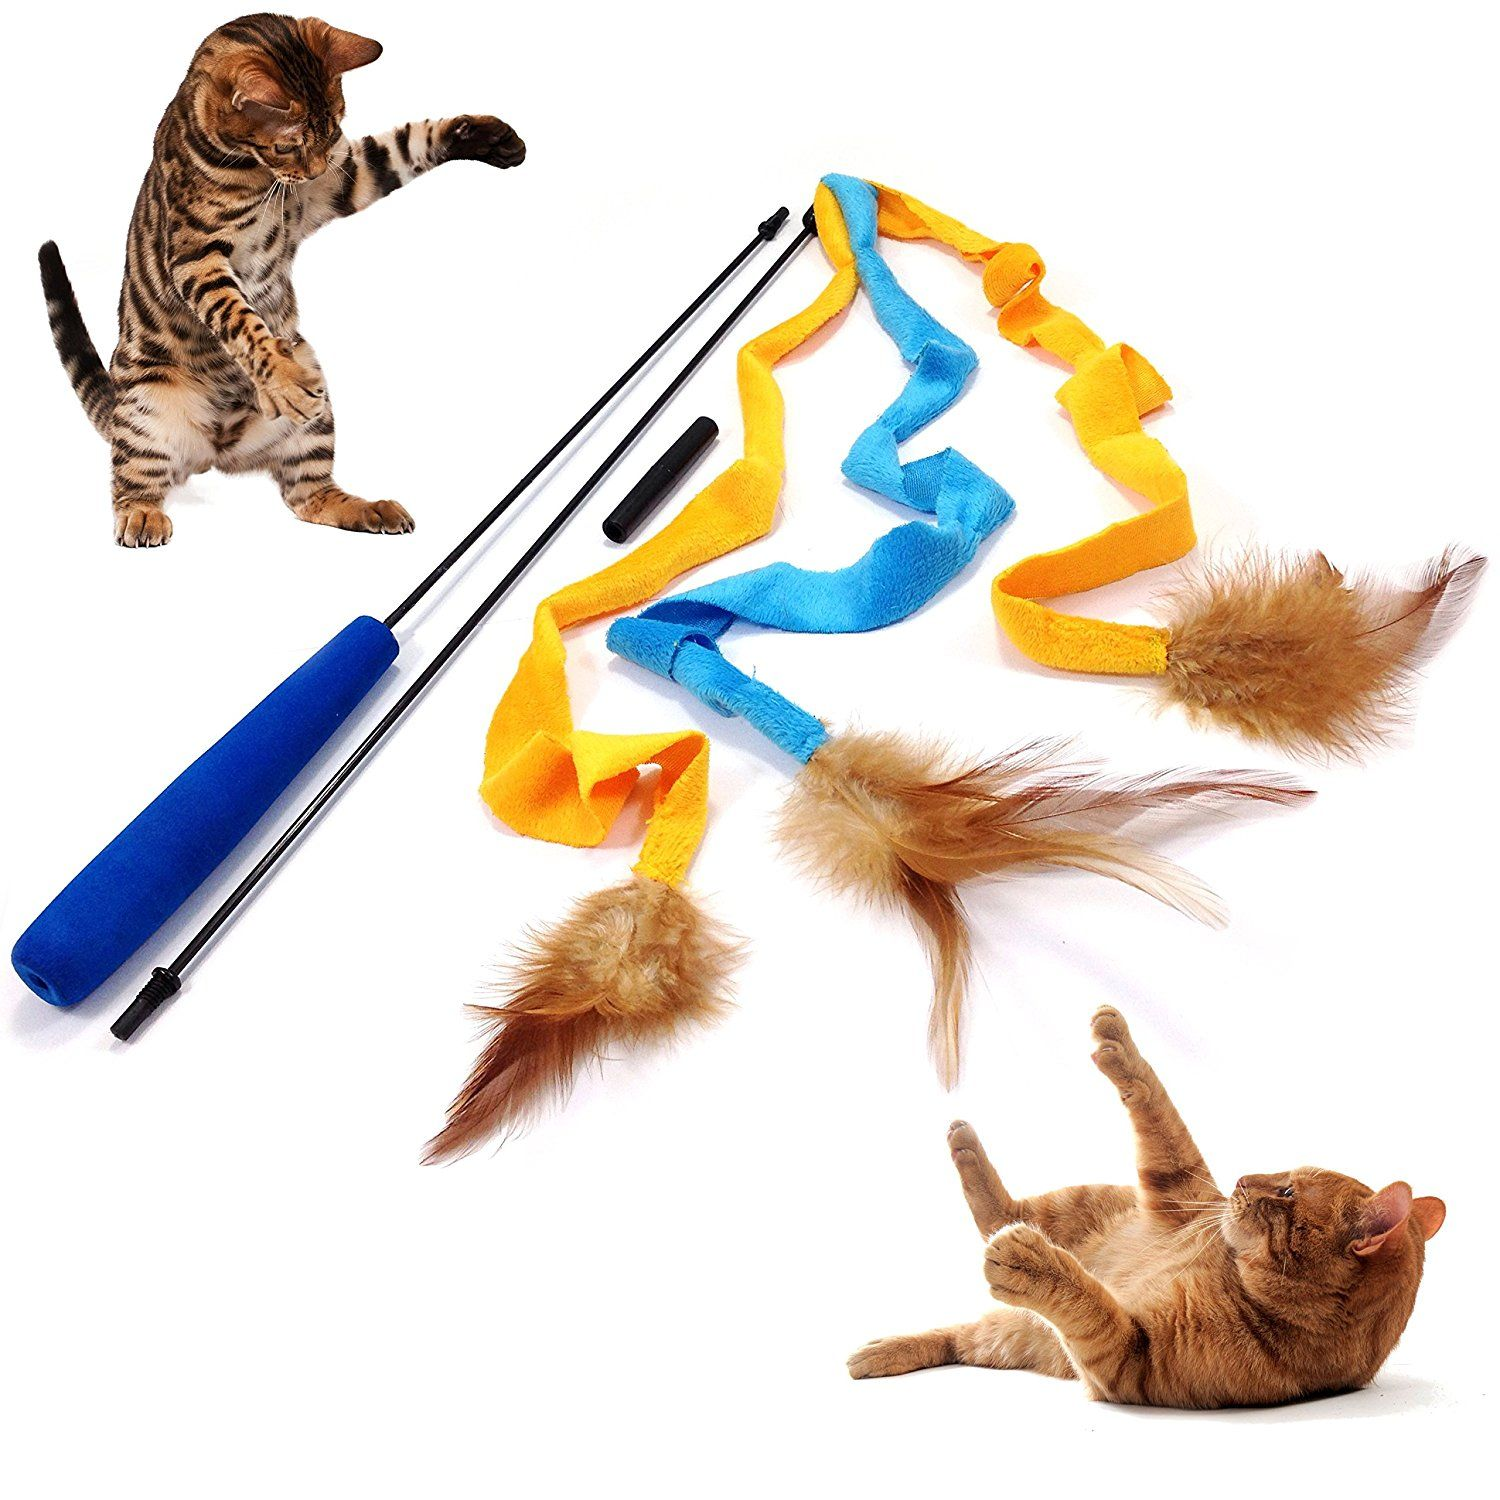 Amazon Com Pet Fit For Life 3 Soft Strands With Feathers Teaser And Exerciser For Cat And Kitten Cat Toy Interactive Cat Wand Pet Supplies